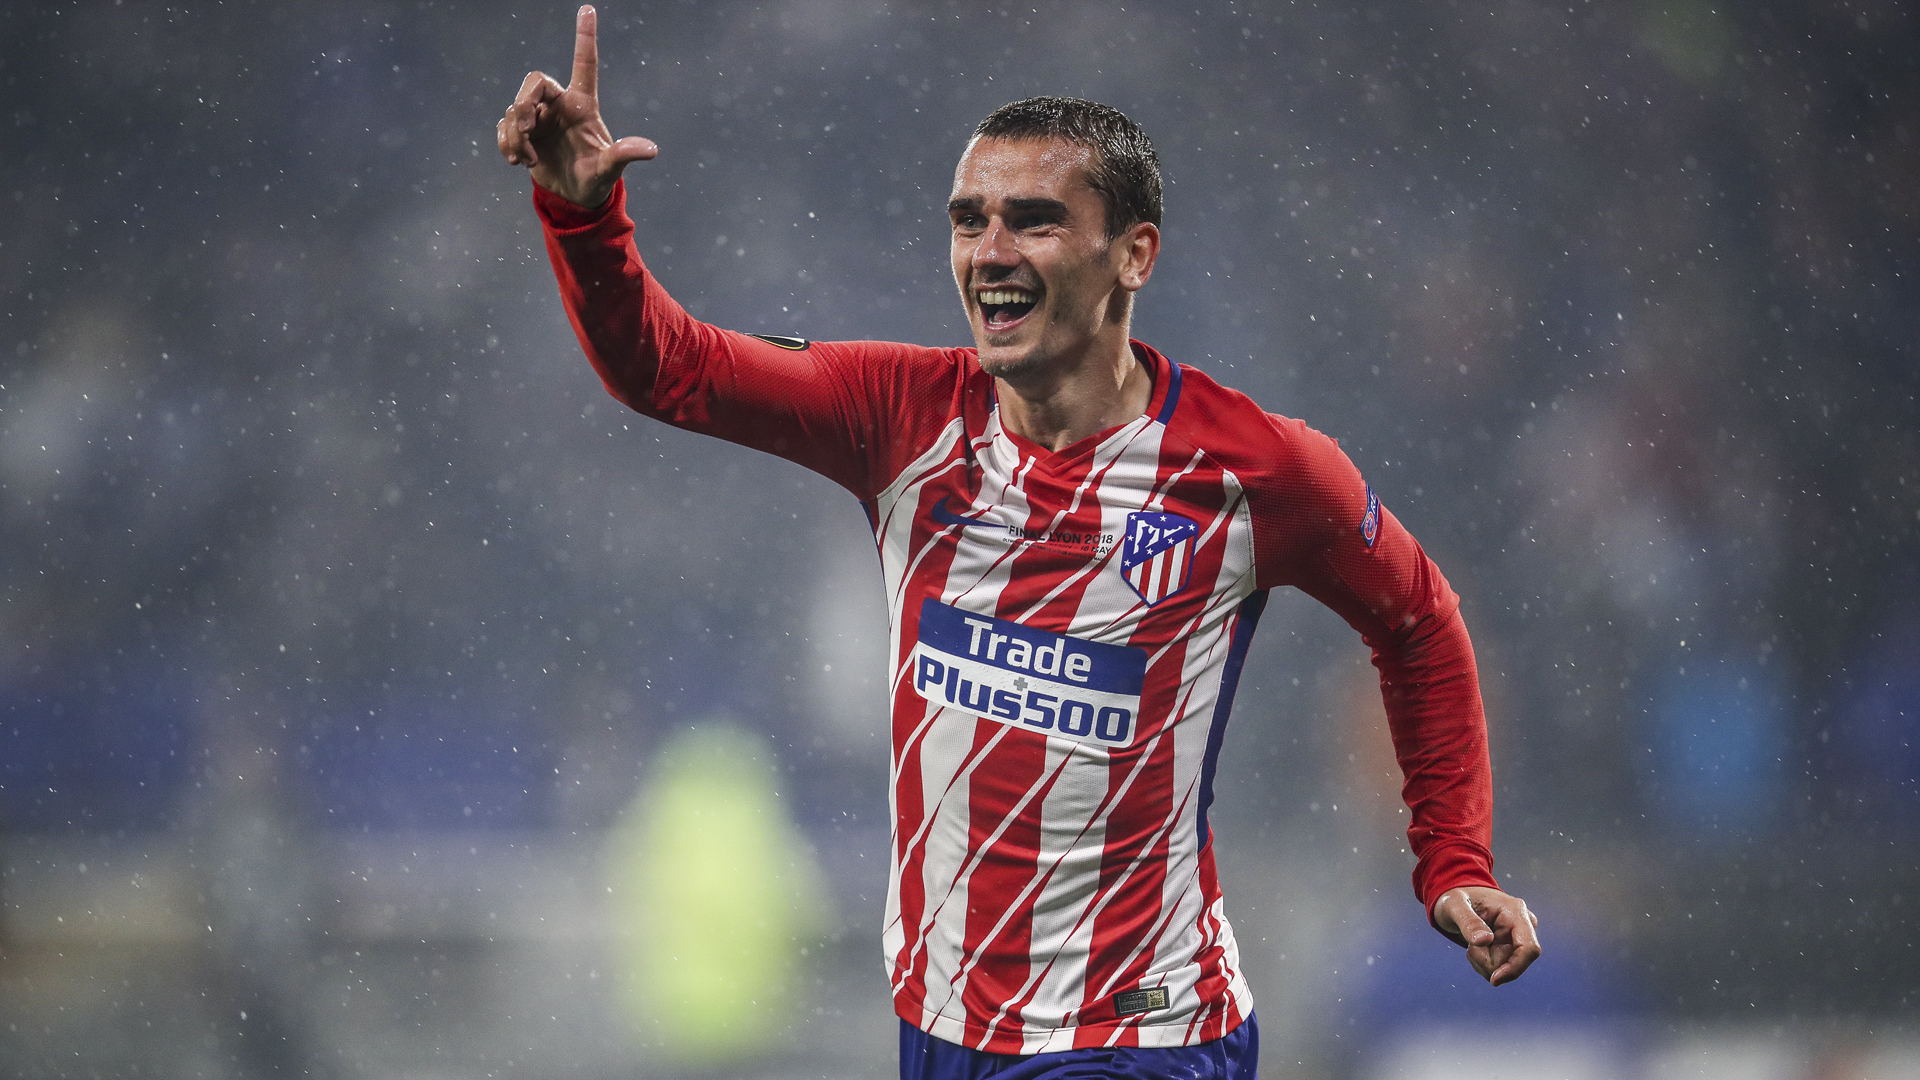 World Cup winners Griezmann and Hernandez back in Atletico training